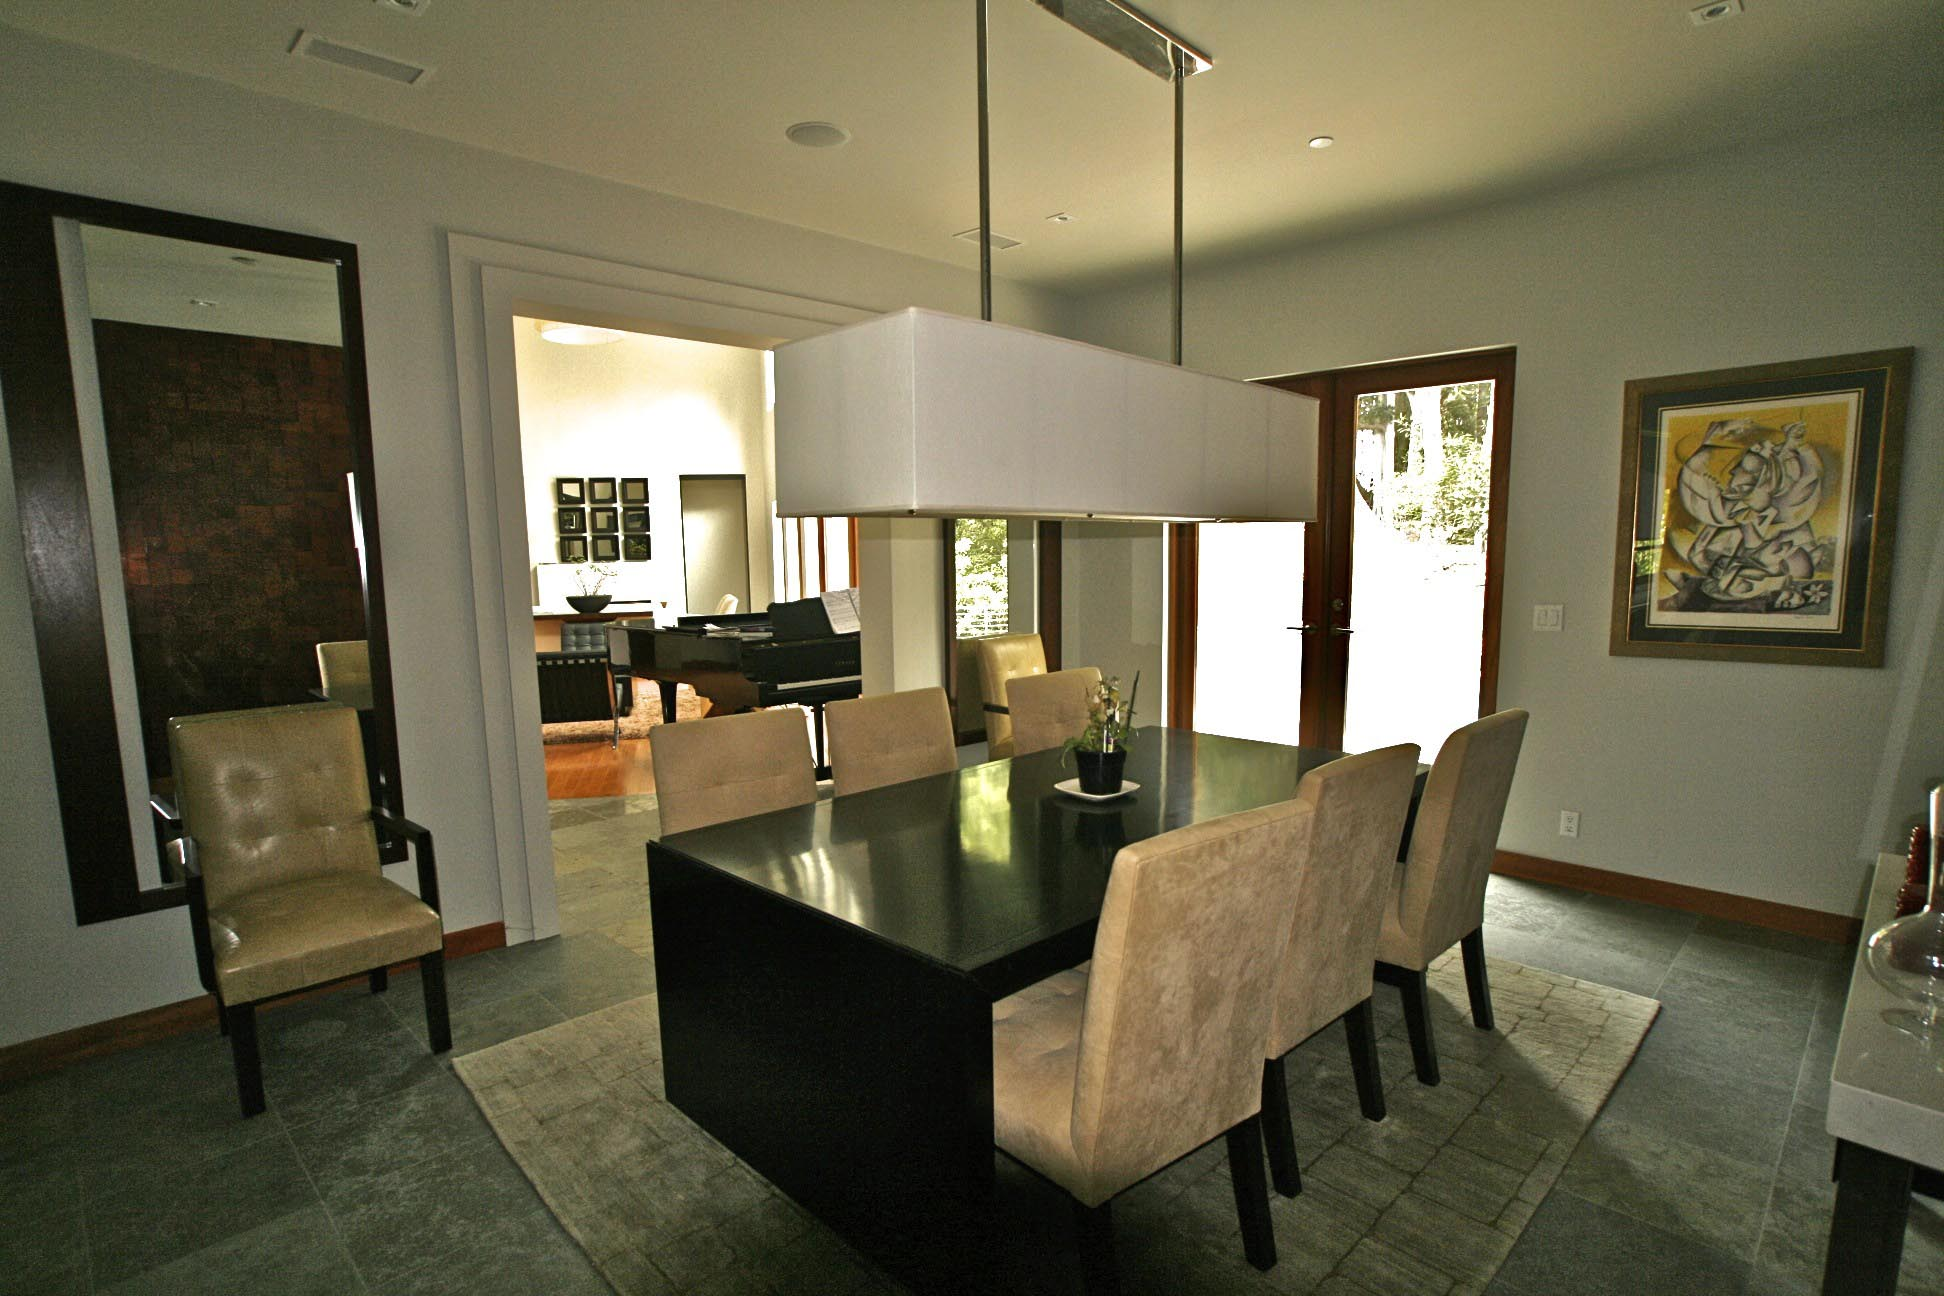 Dining light fixtures make the dining room bright and warm - Dining room lighting ...